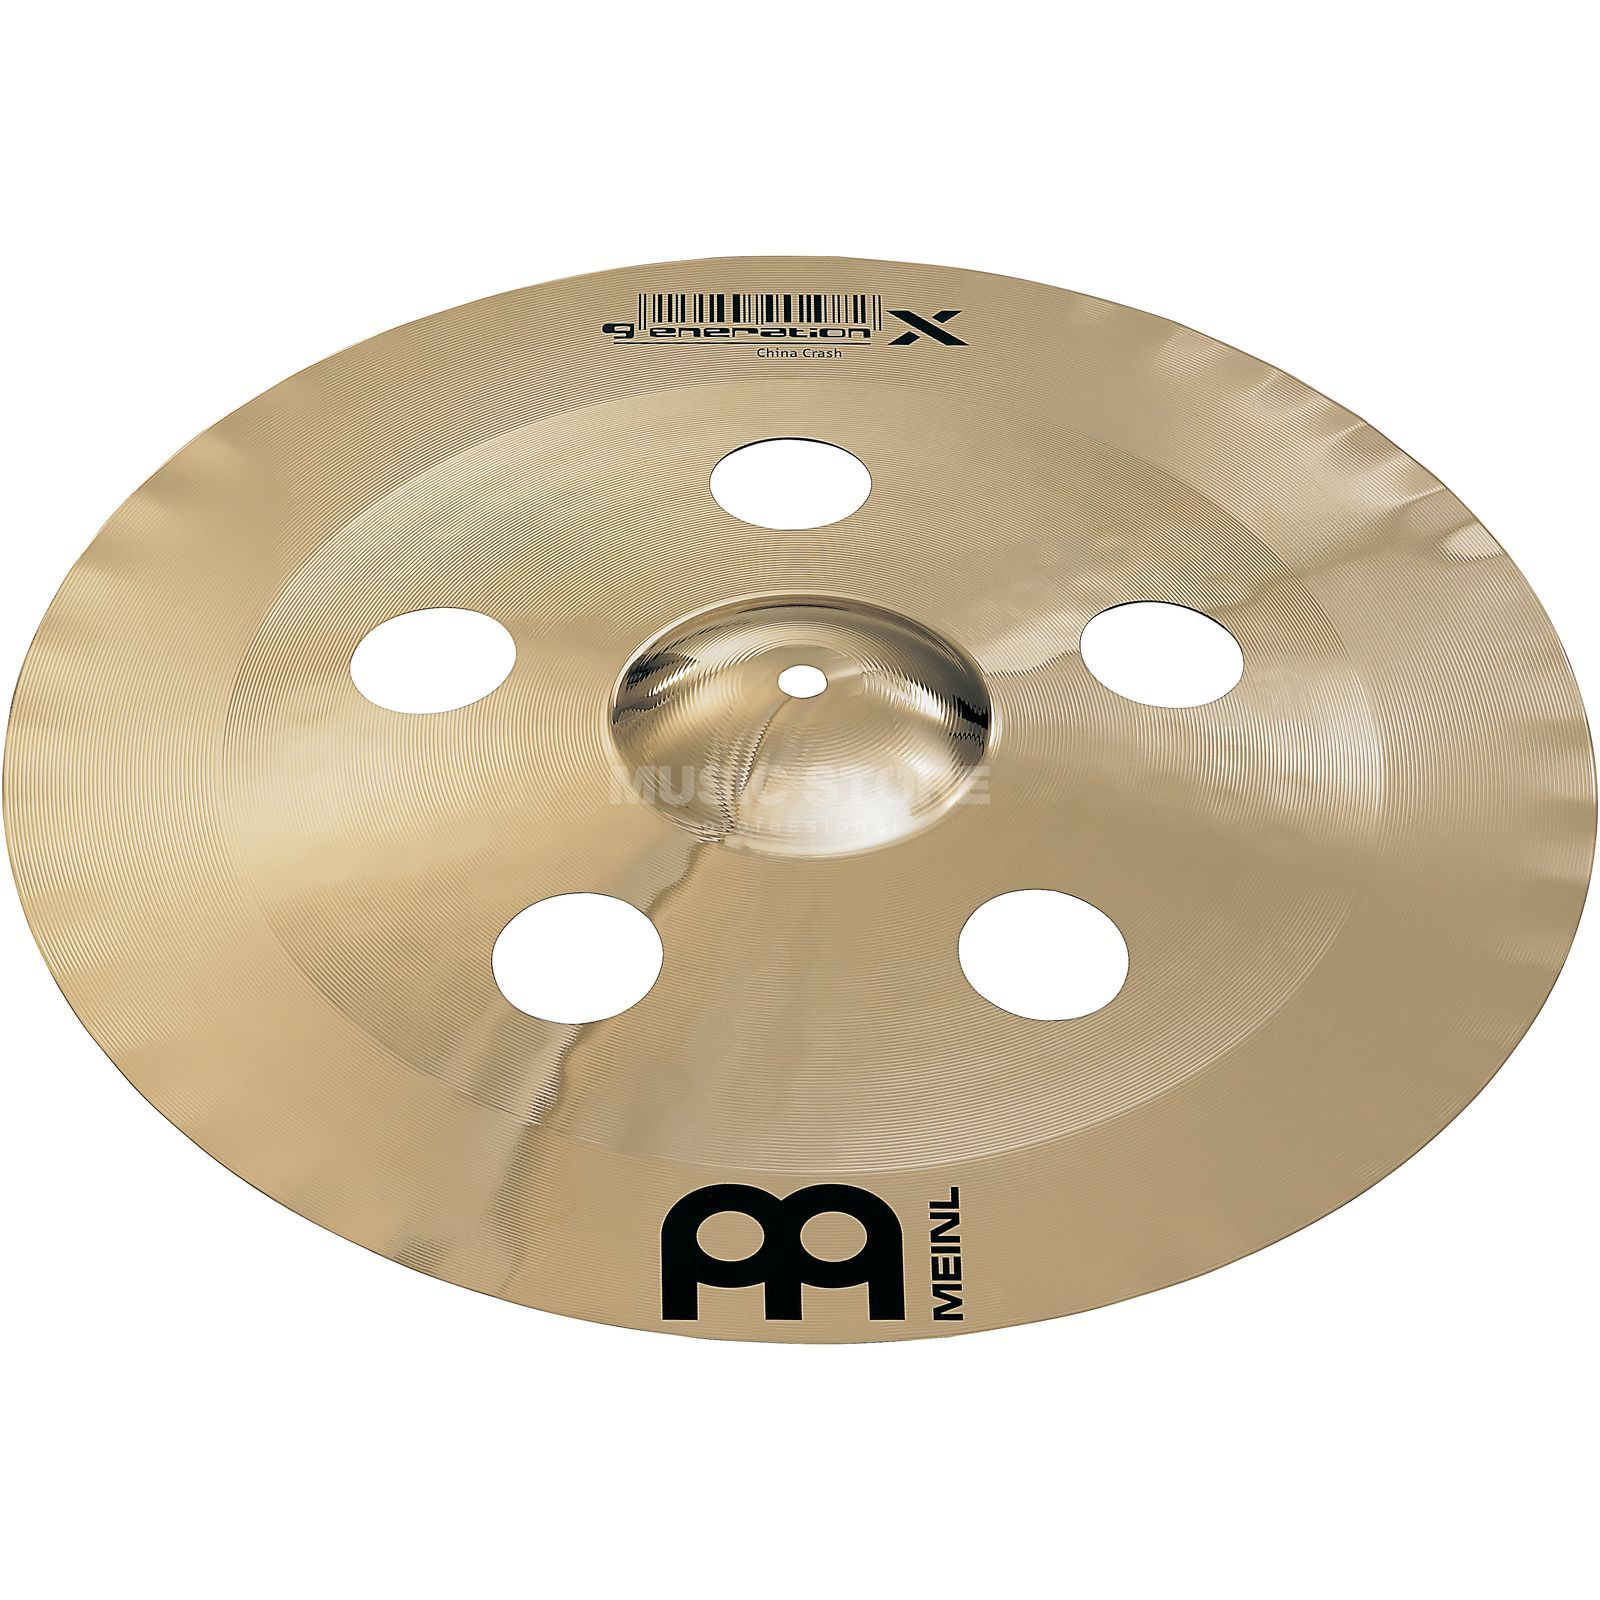 "Meinl Generation X China Crash 15"", GX-15CHC-B Produktbild"